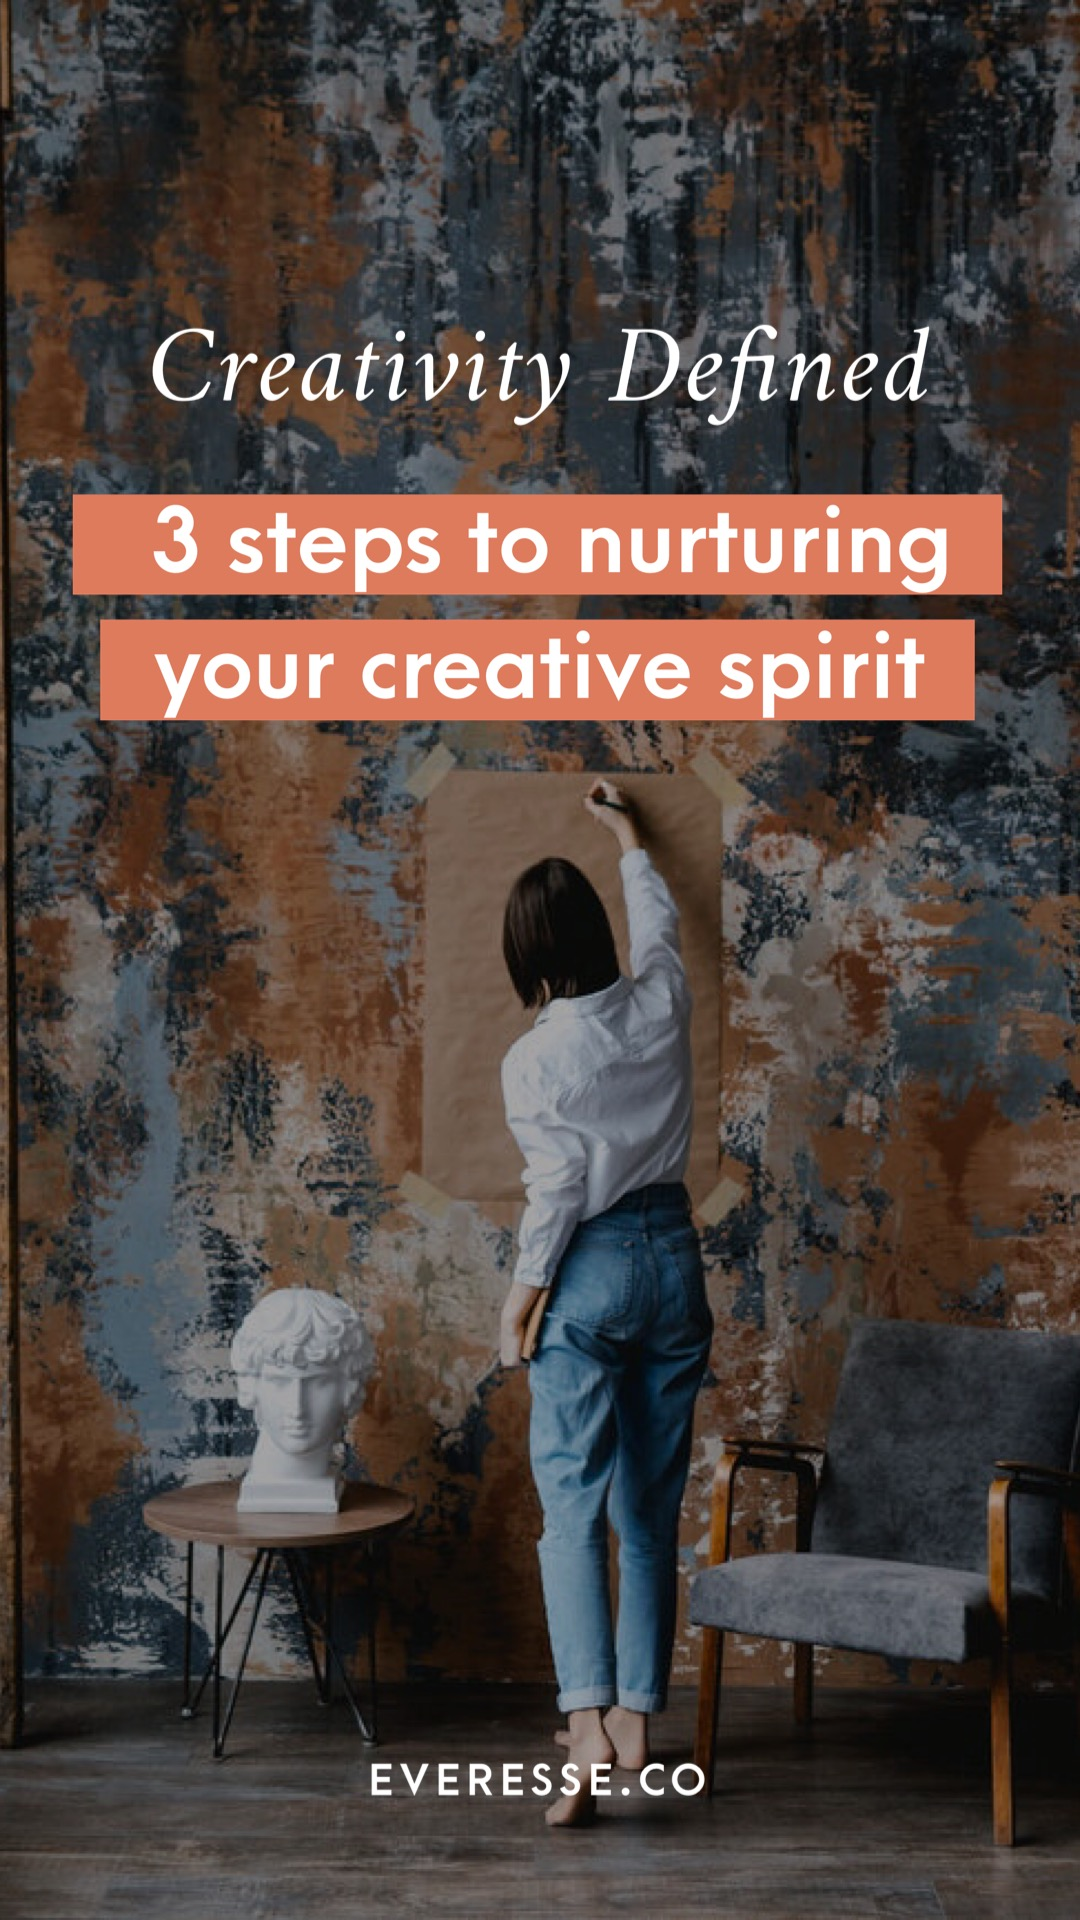 Creativity defined: a 3-step guide to nurturing your creative spirit